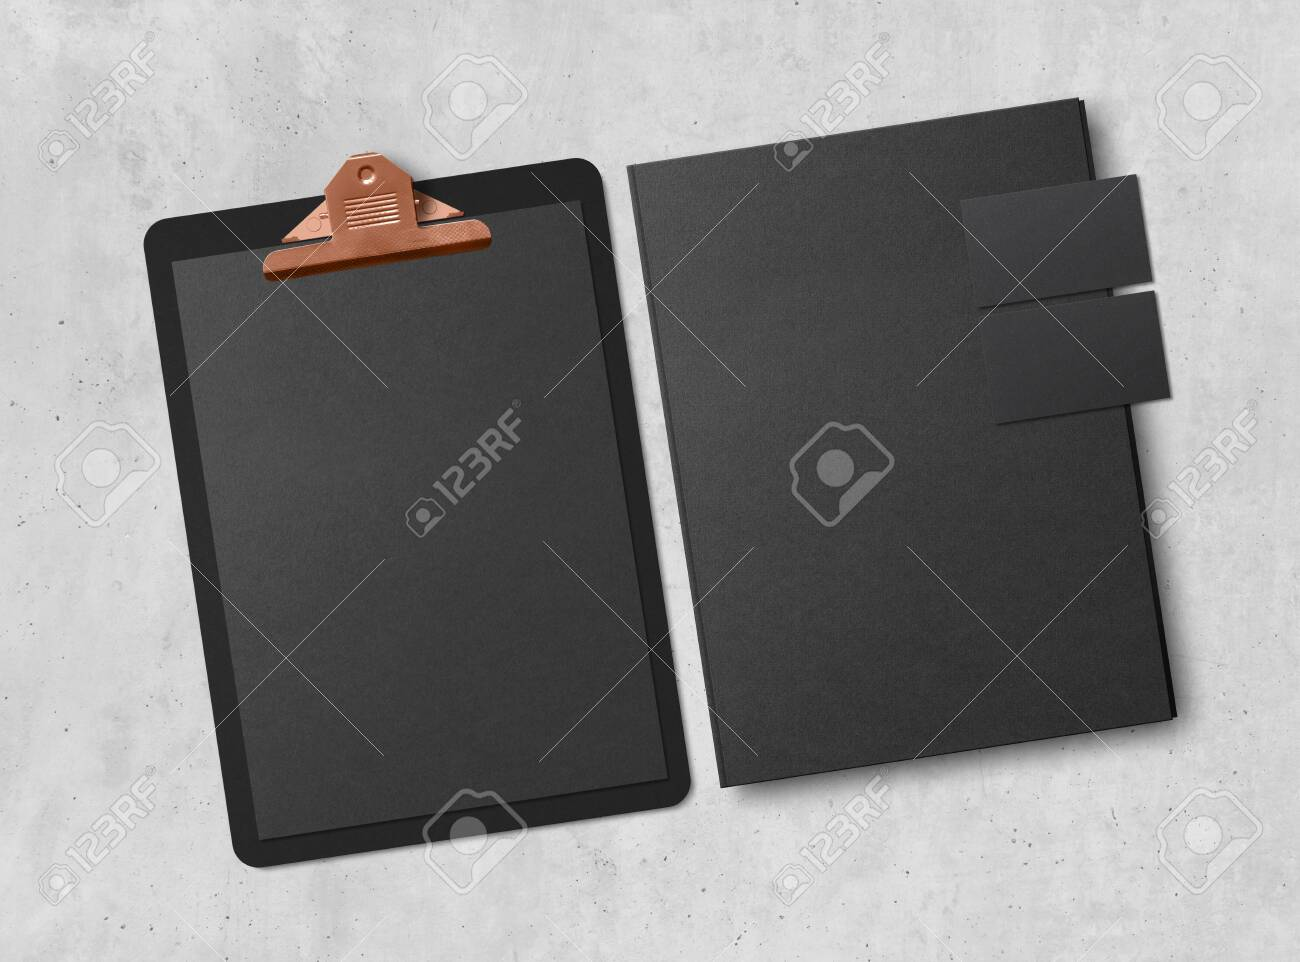 Mock-up. Clipboard with sheets of paper, business cards and folder on concrete background. Template for branding identity. Blank objects for placing your design. 3d illustration. - 149197965